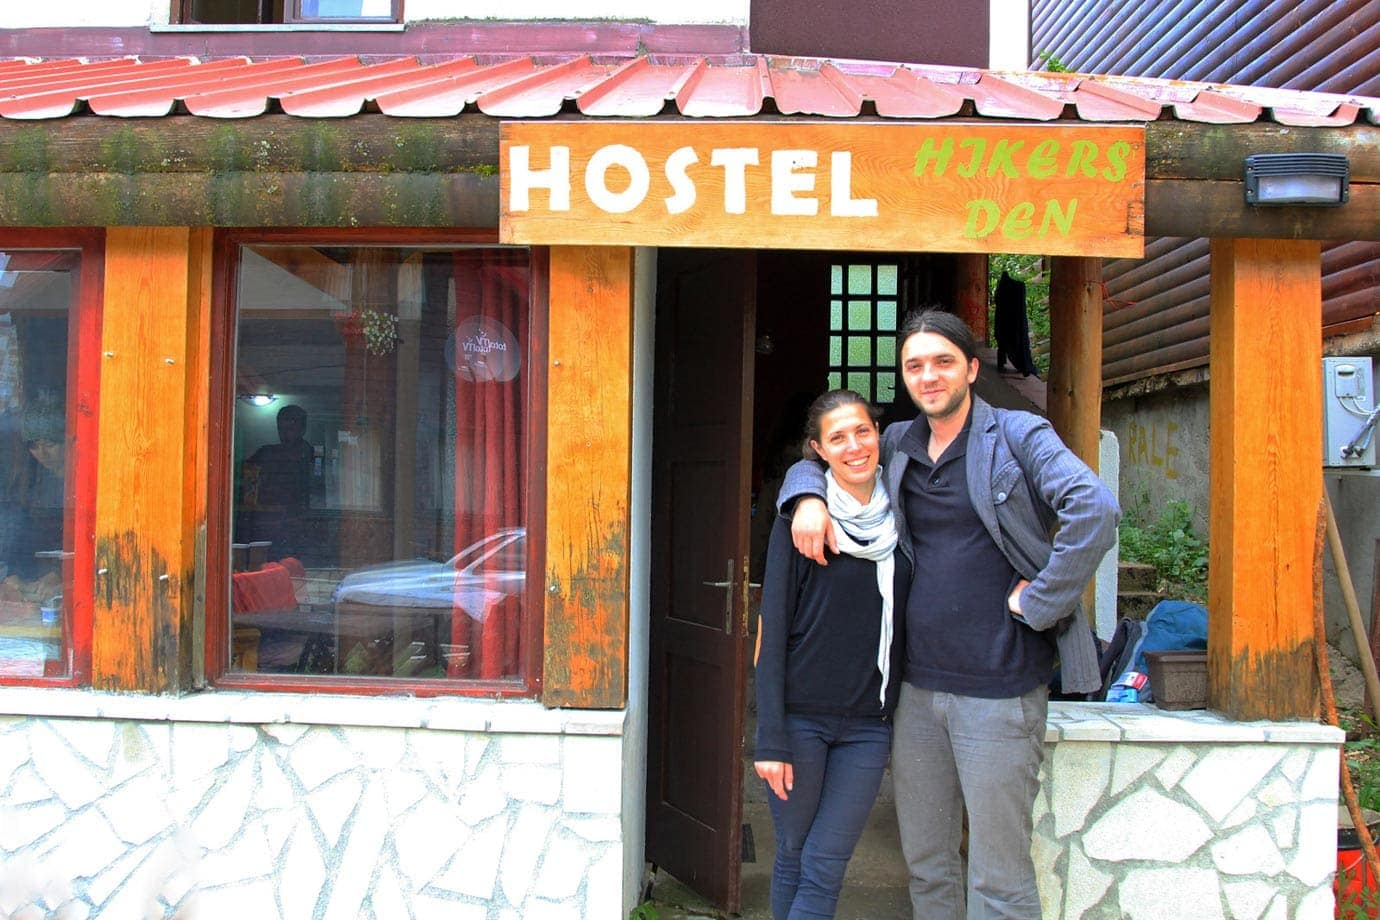 The Hikers Den Hostel